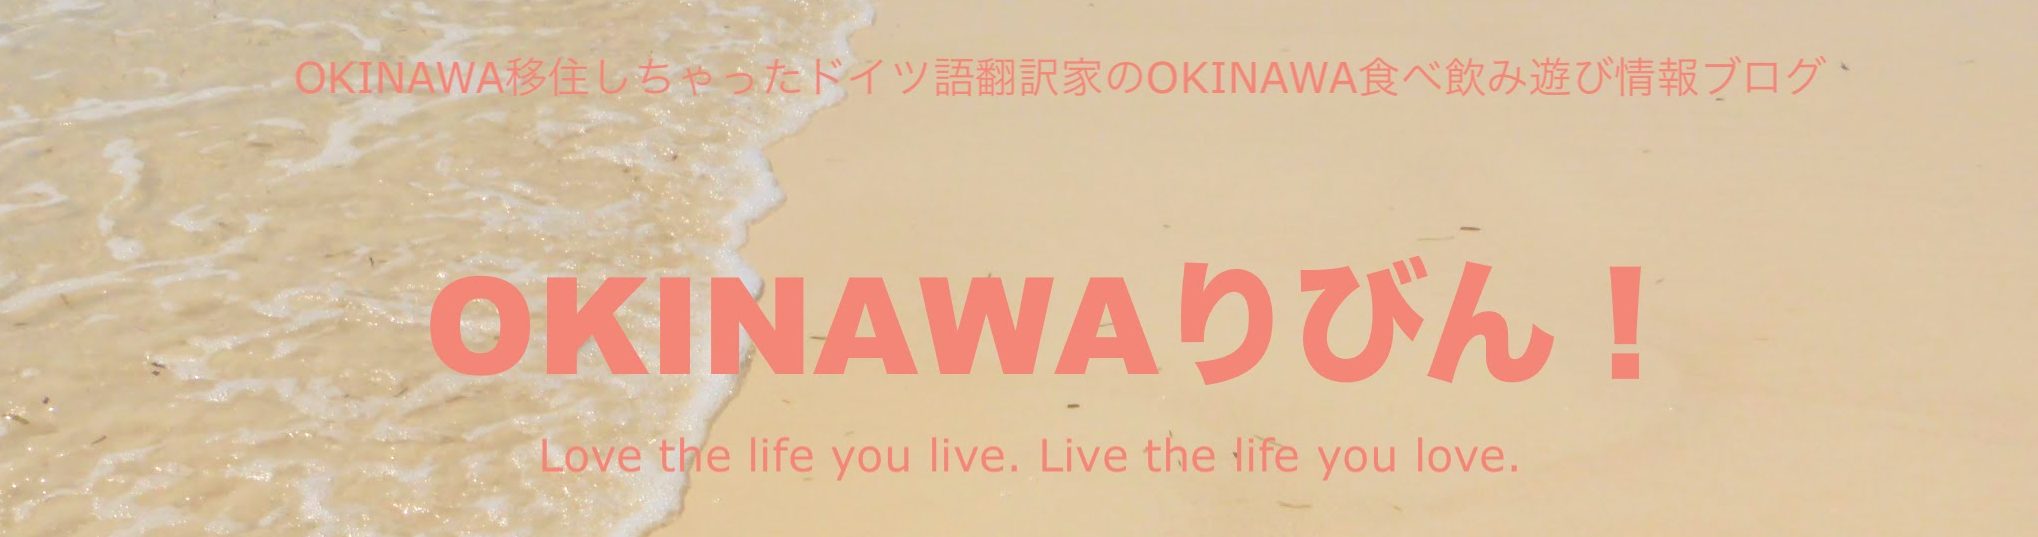 OKINAWAりびん!